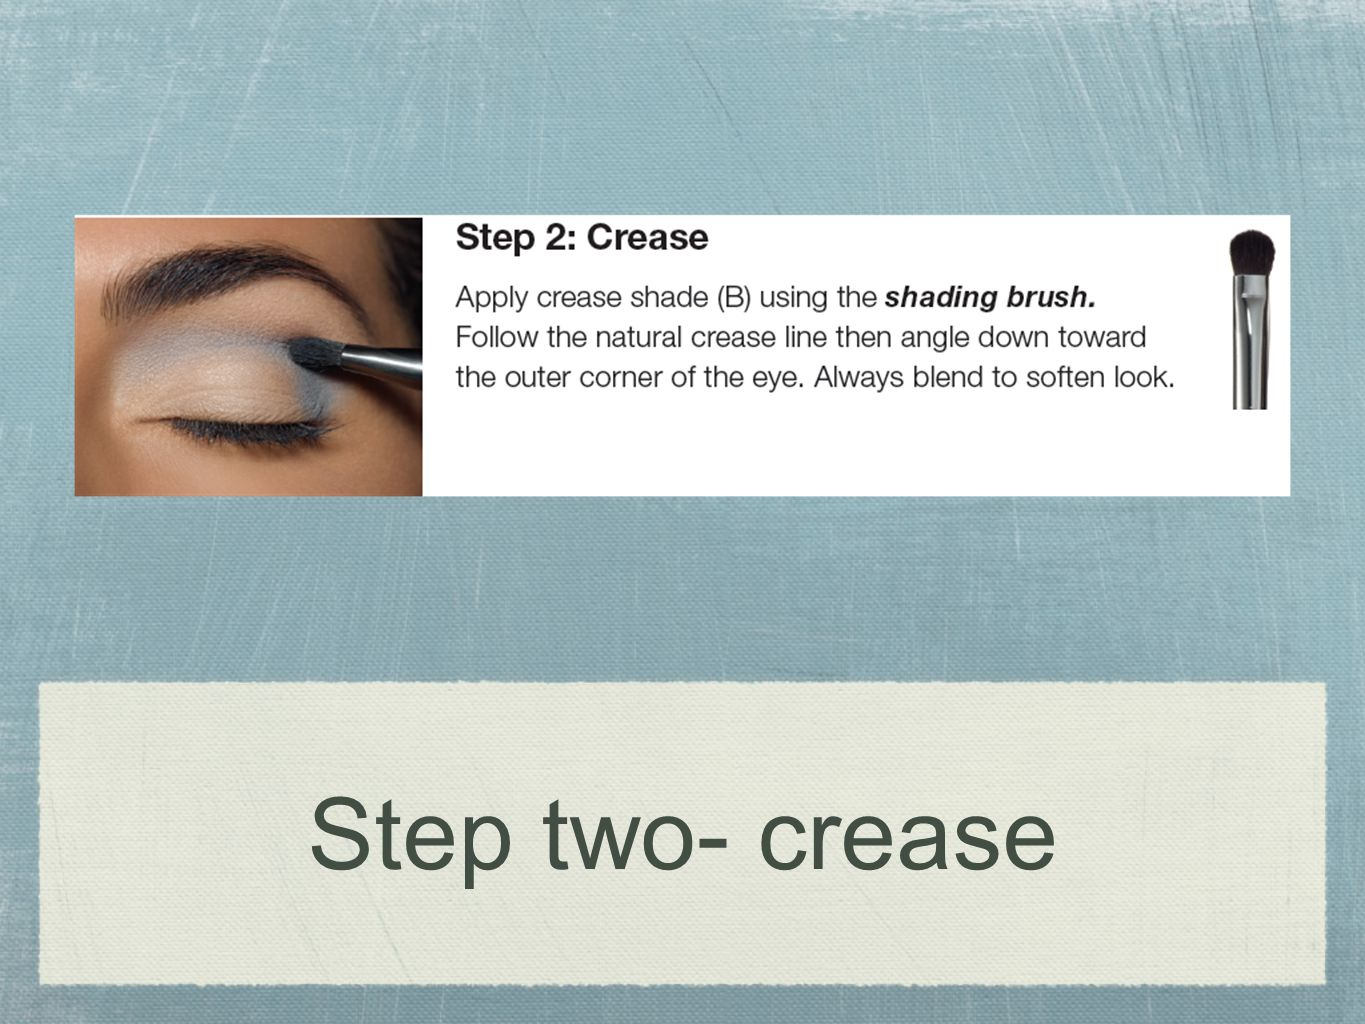 Step two- crease